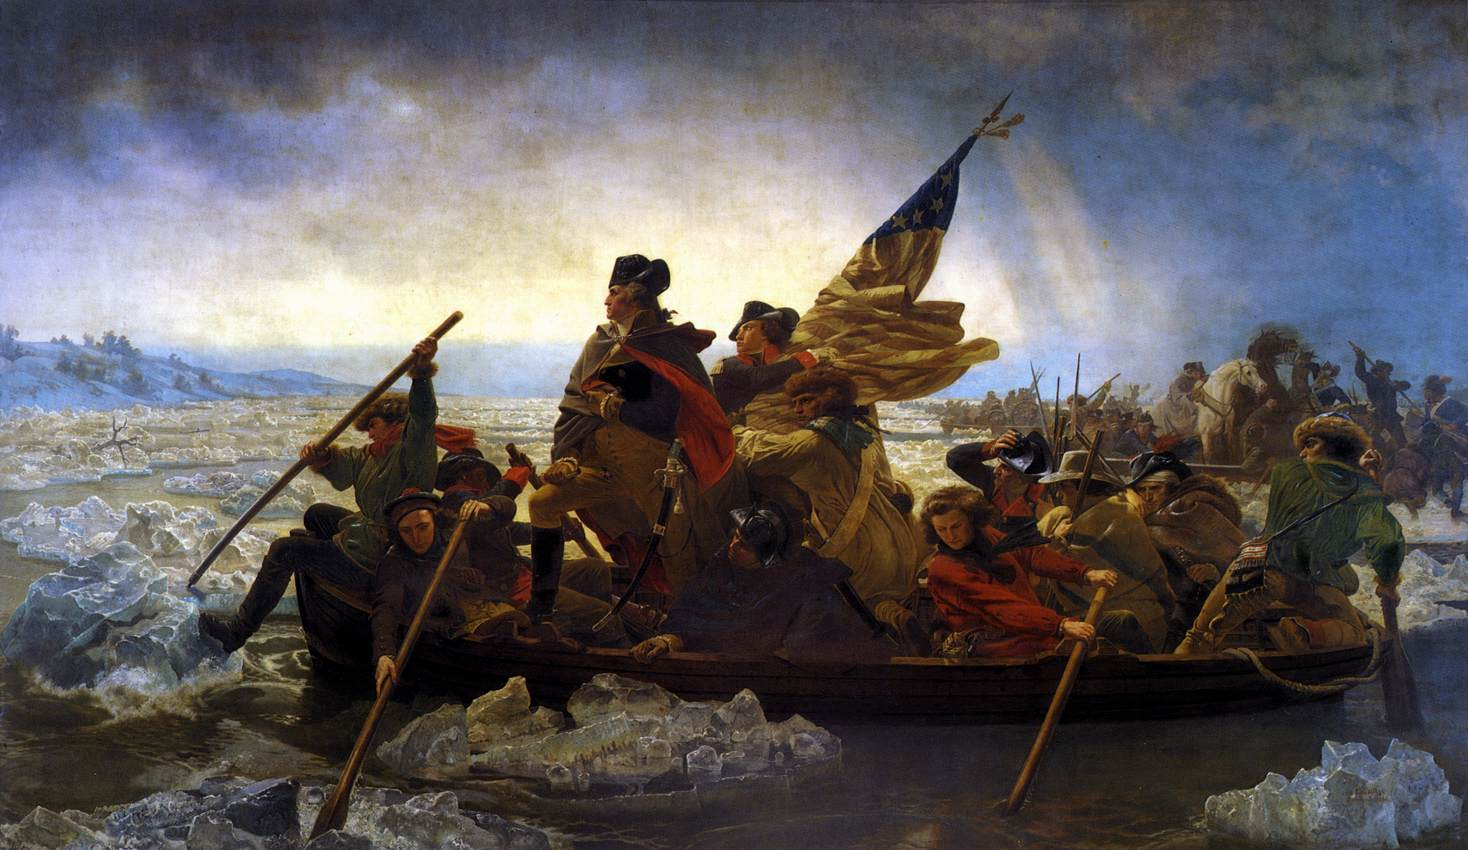 http://upload.wikimedia.org/wikipedia/commons/1/11/Emanuel_Leutze_-_Washington_Crossing_the_Delaware_-_WGA12909.jpg